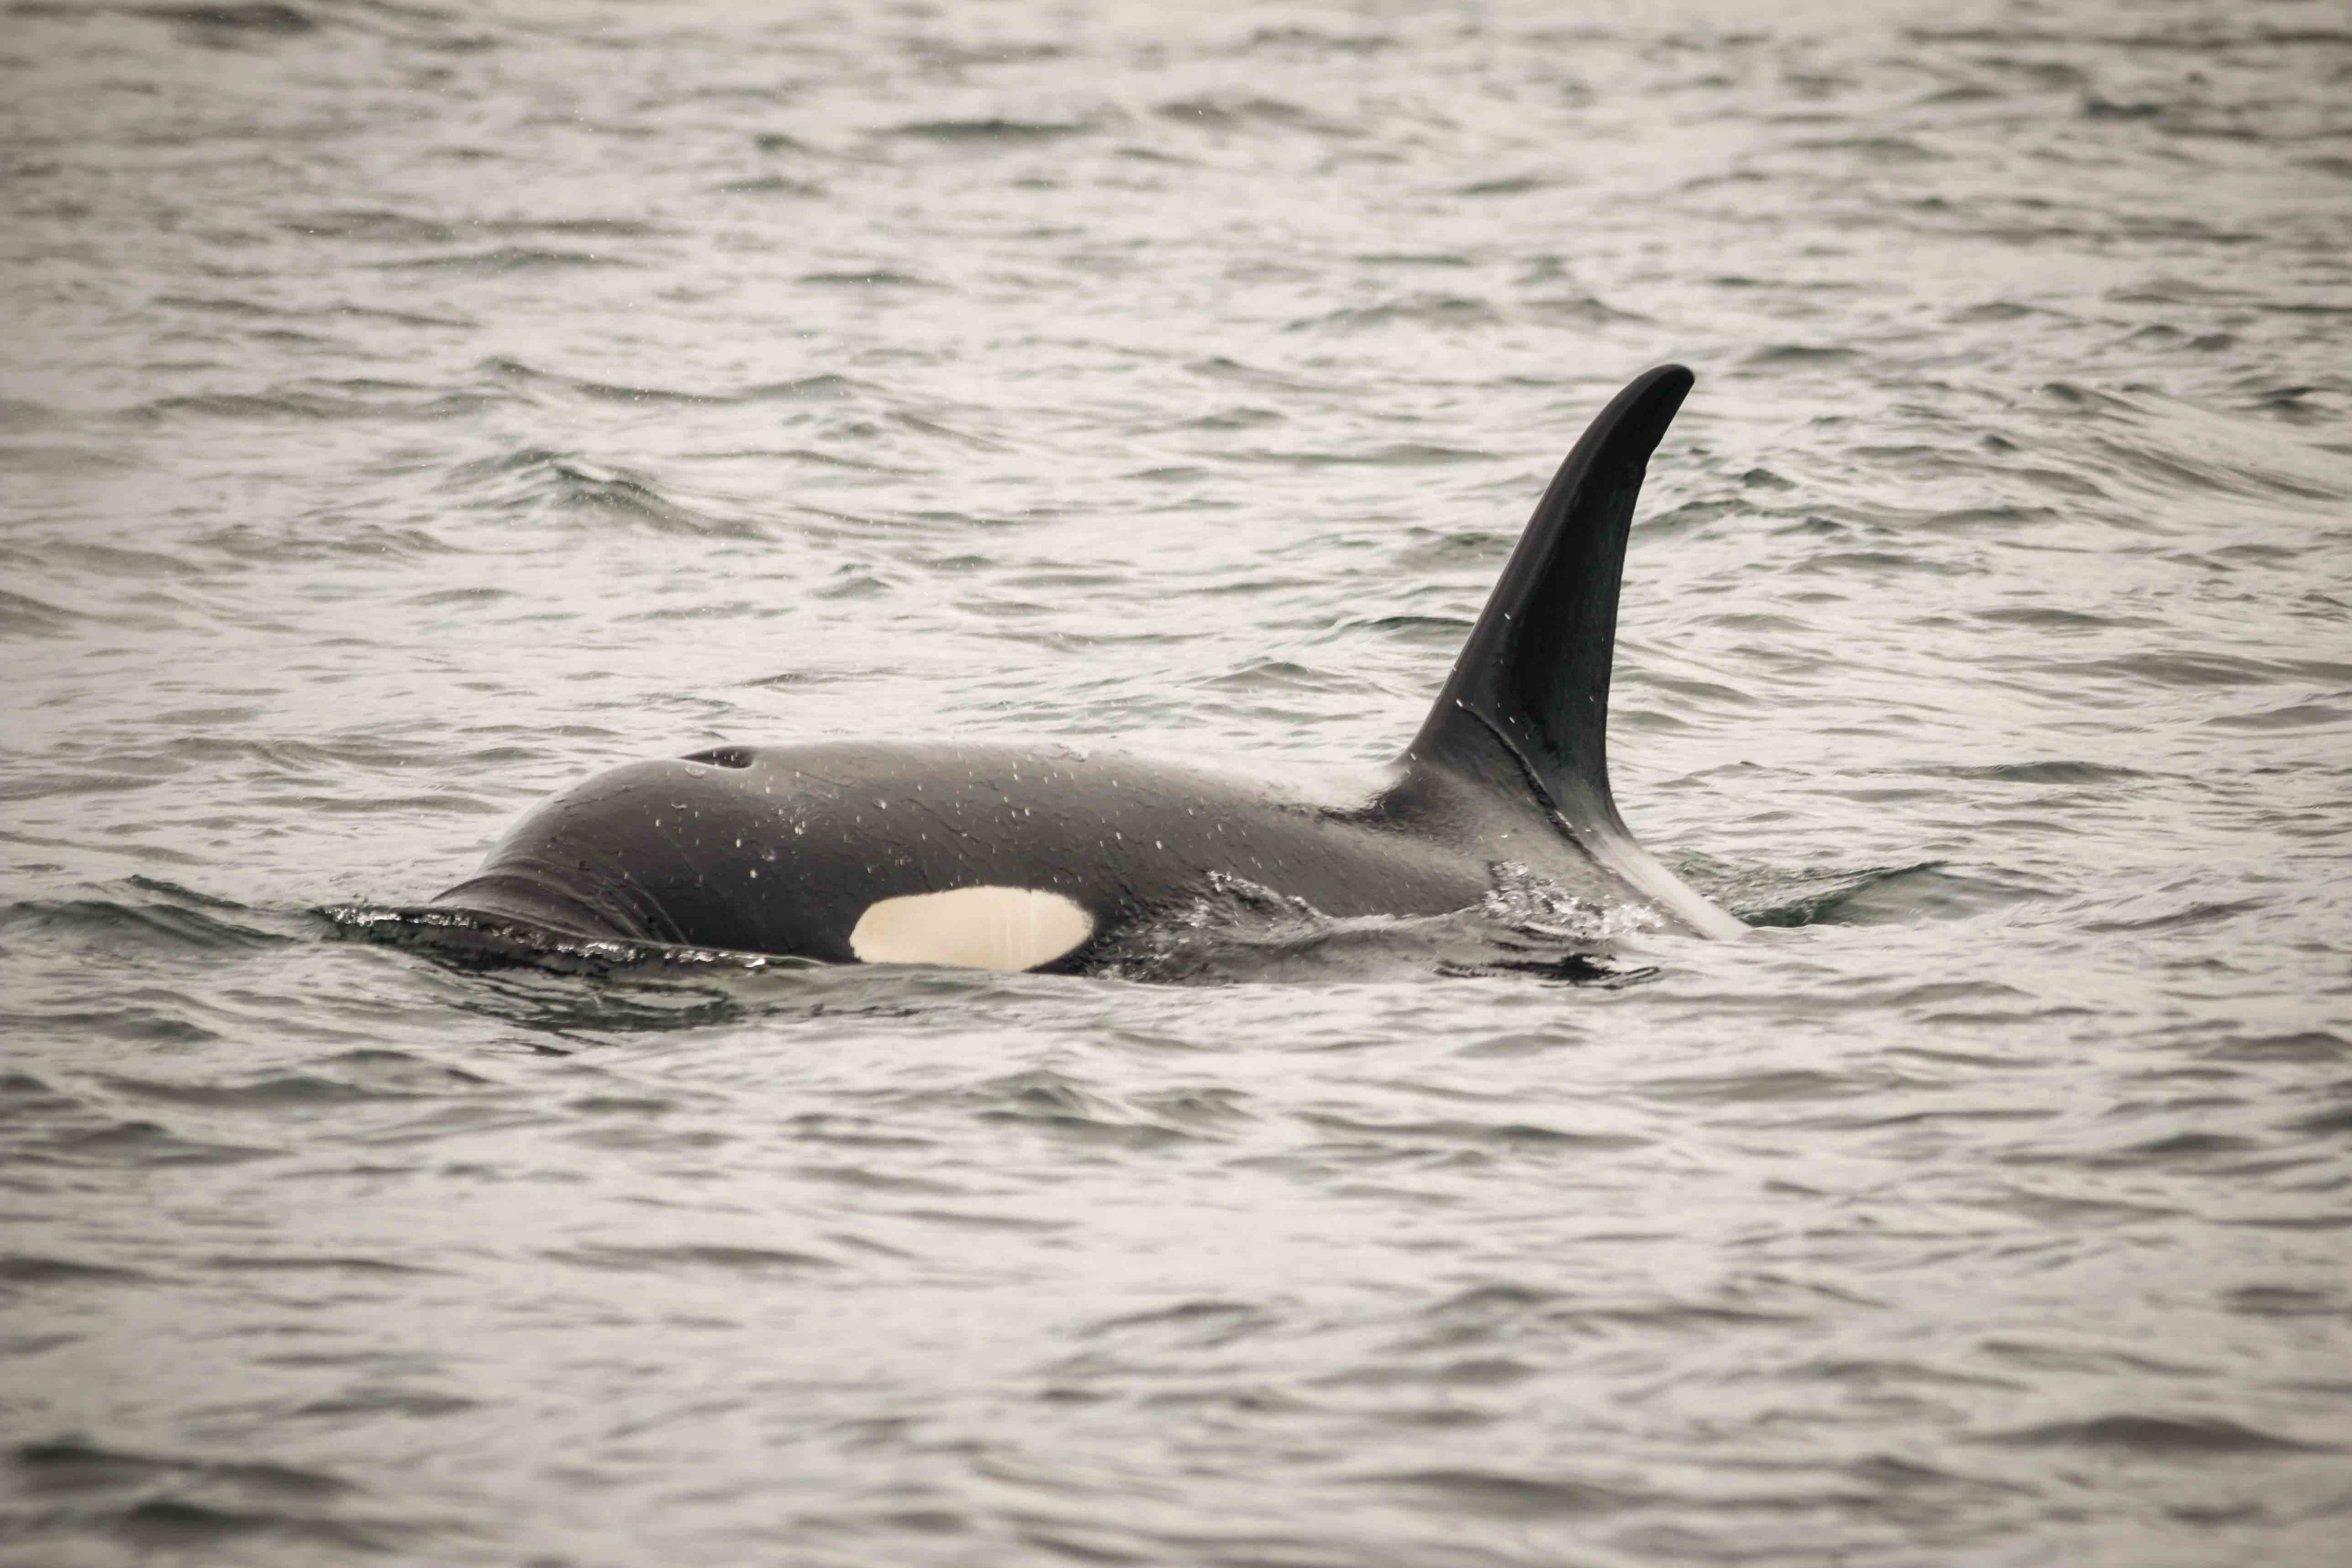 Orca Whales Frequent Our Waters